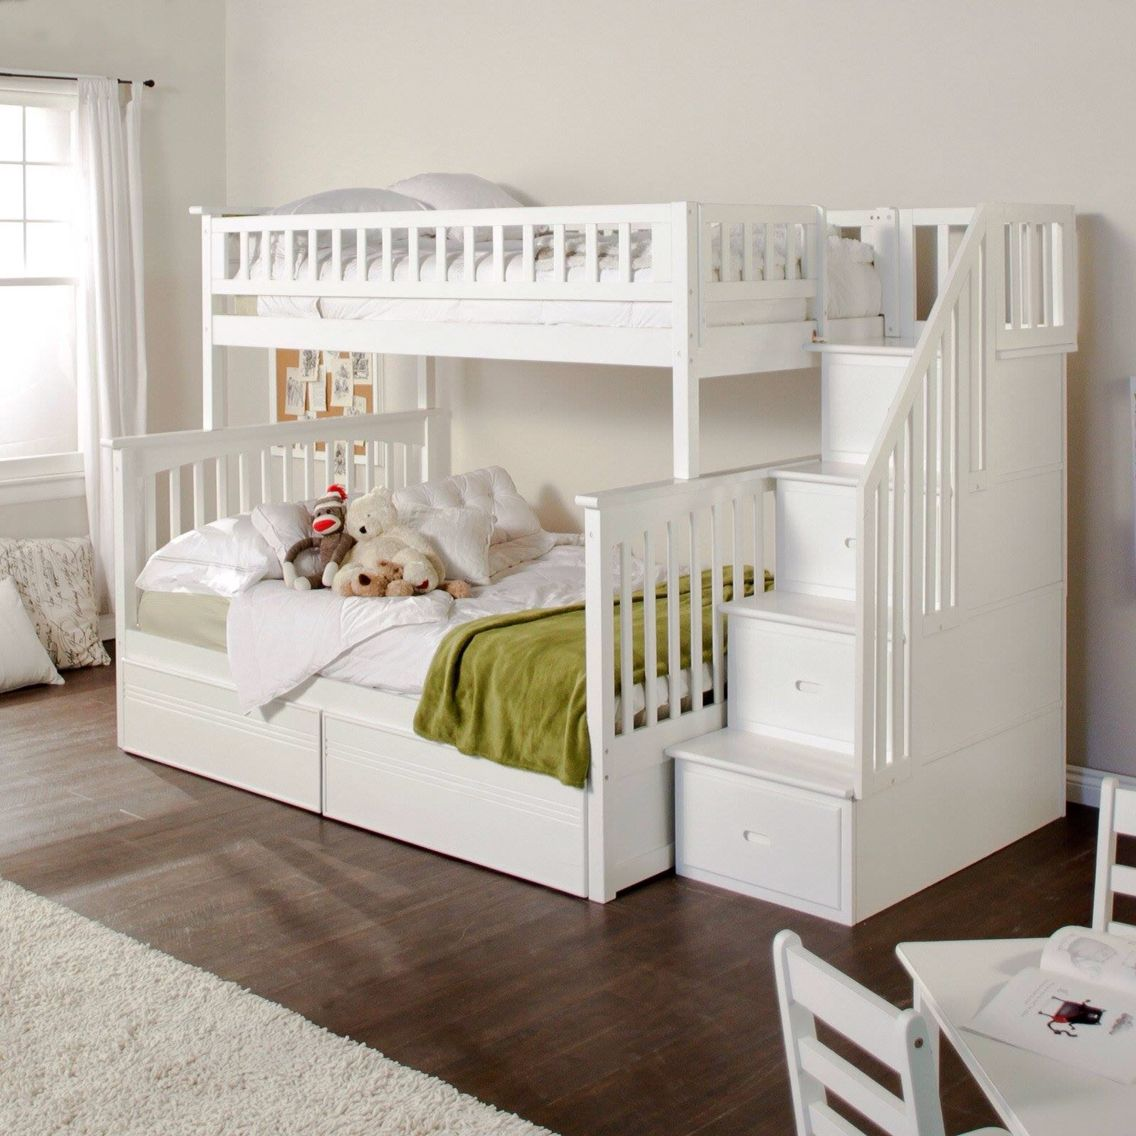 Corner twin loft bed  Stunning Bedroom Design Ideas for  Ideas Design Bedroom Bed